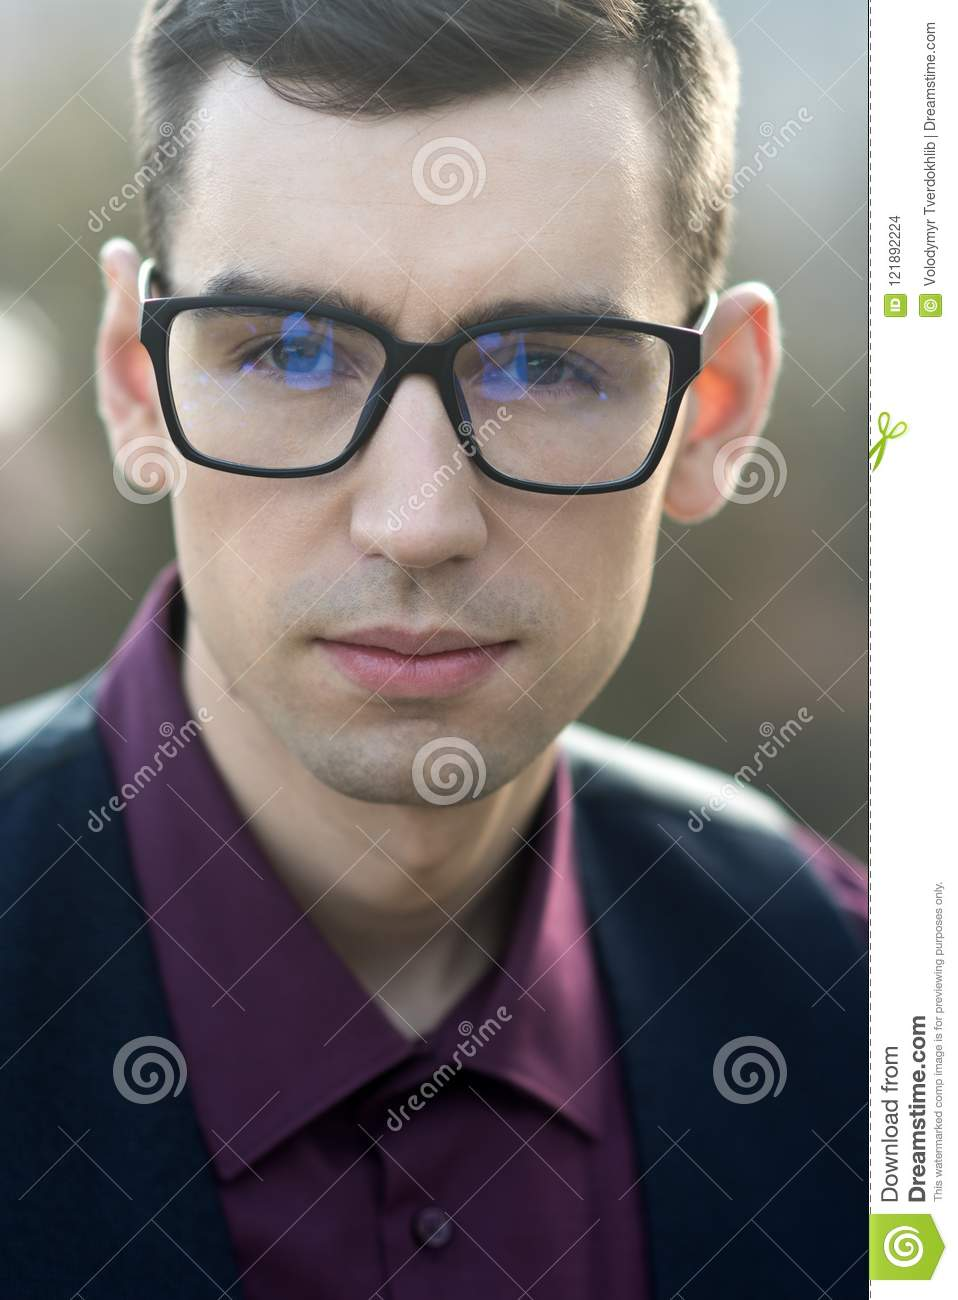 59af748fdbfe Businessman grooming in optics shop. smart fashion. Man in anti-reflection  glasses for visual improvement at oculist. barber service in barbershop  salon